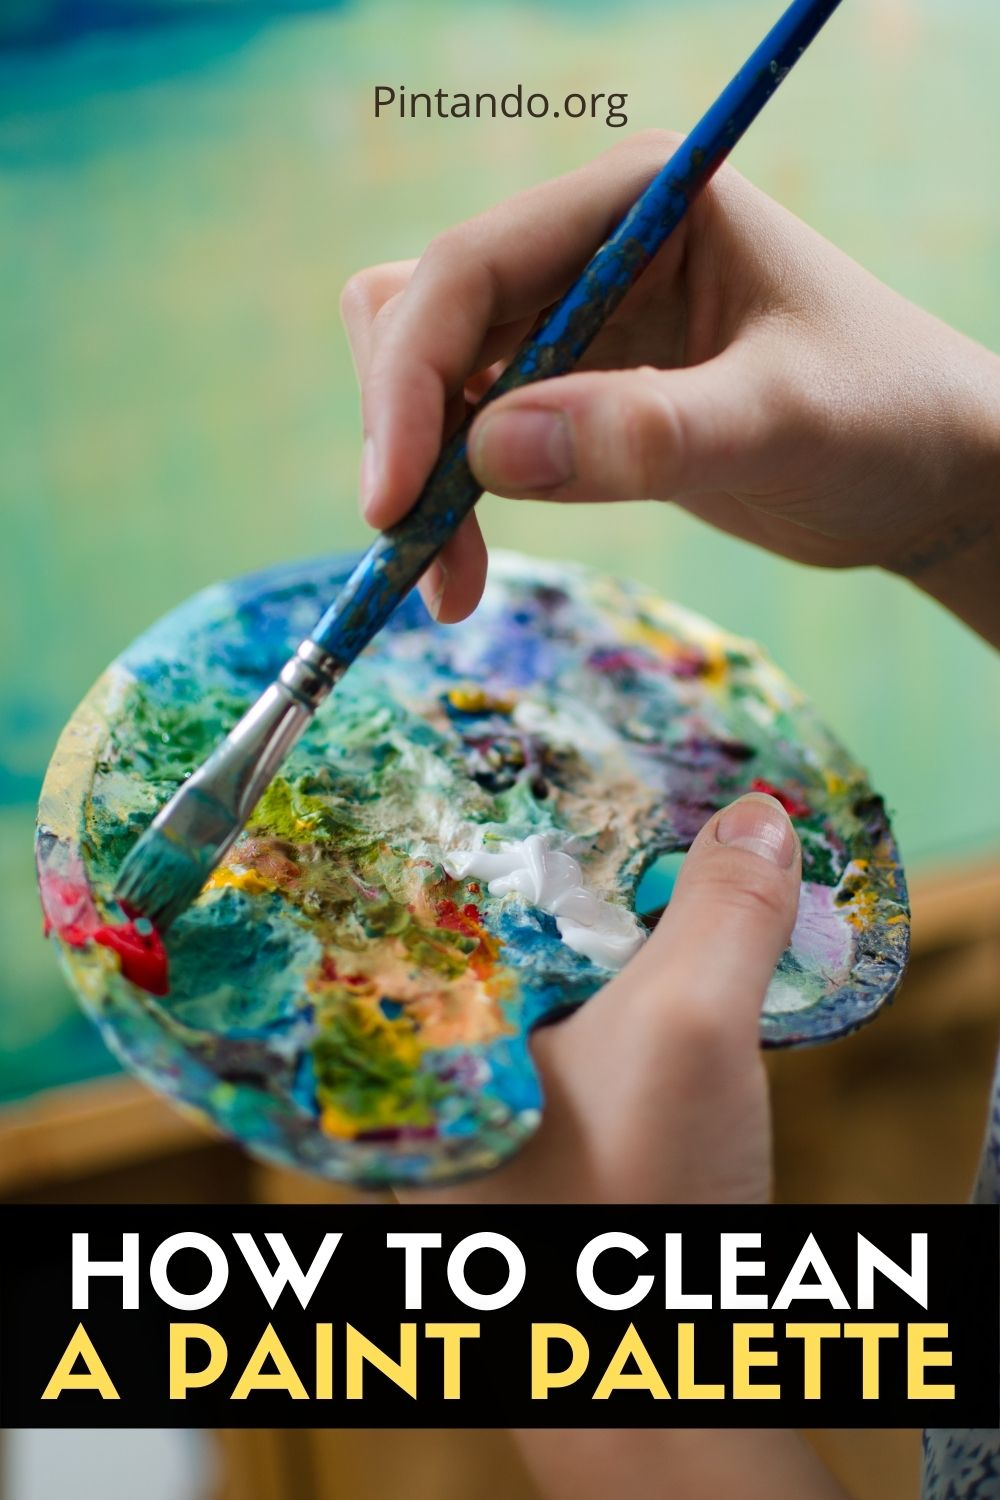 HOW TO CLEAN A PAINT PALETTE